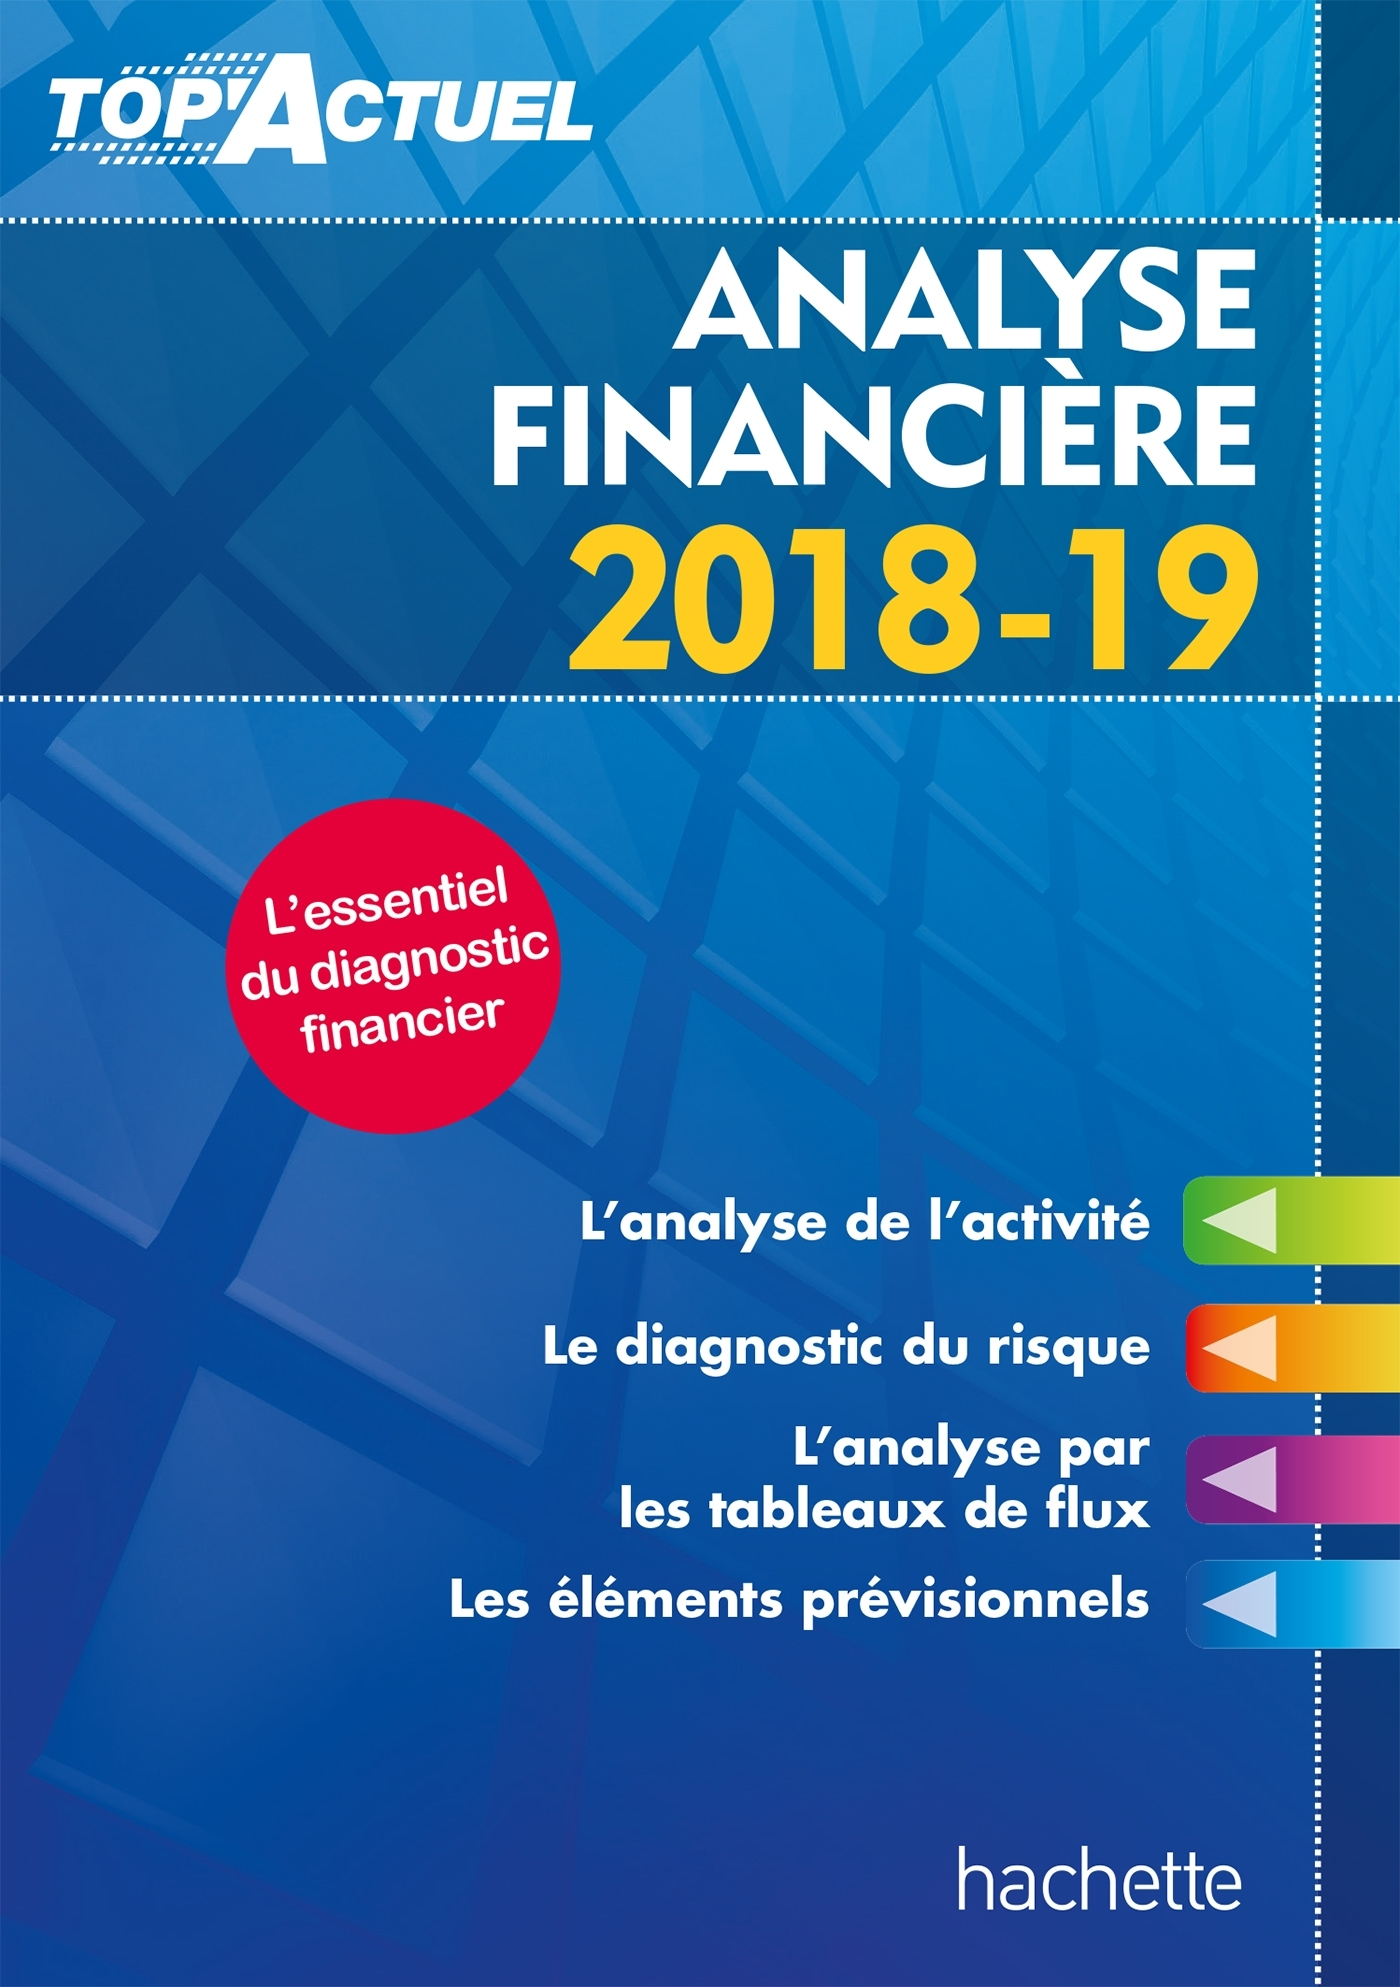 TOP'ACTUEL ANALYSE FINANCIERE 2018-2019